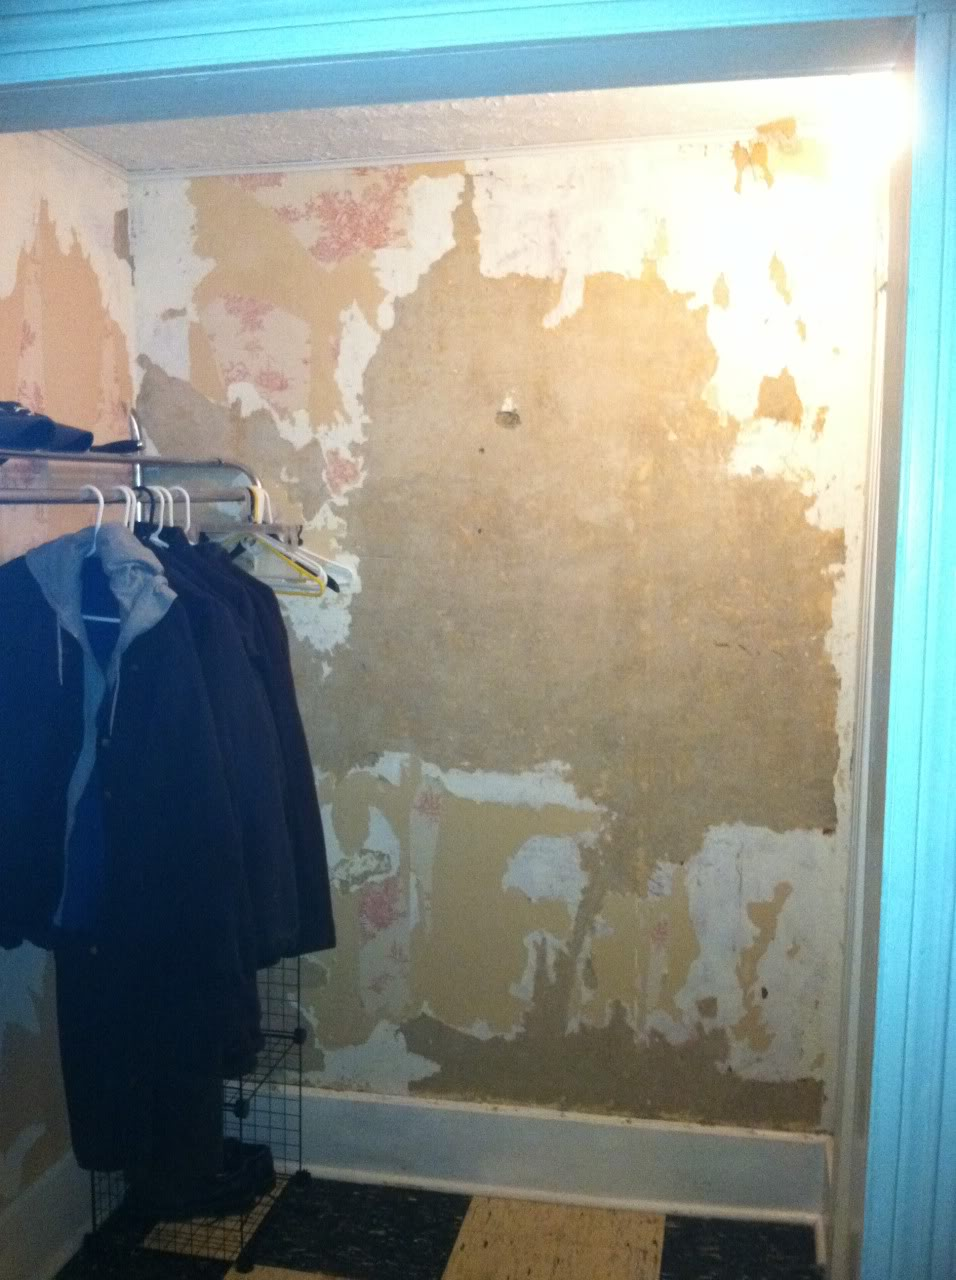 download how to get wallpaper off plaster walls gallery